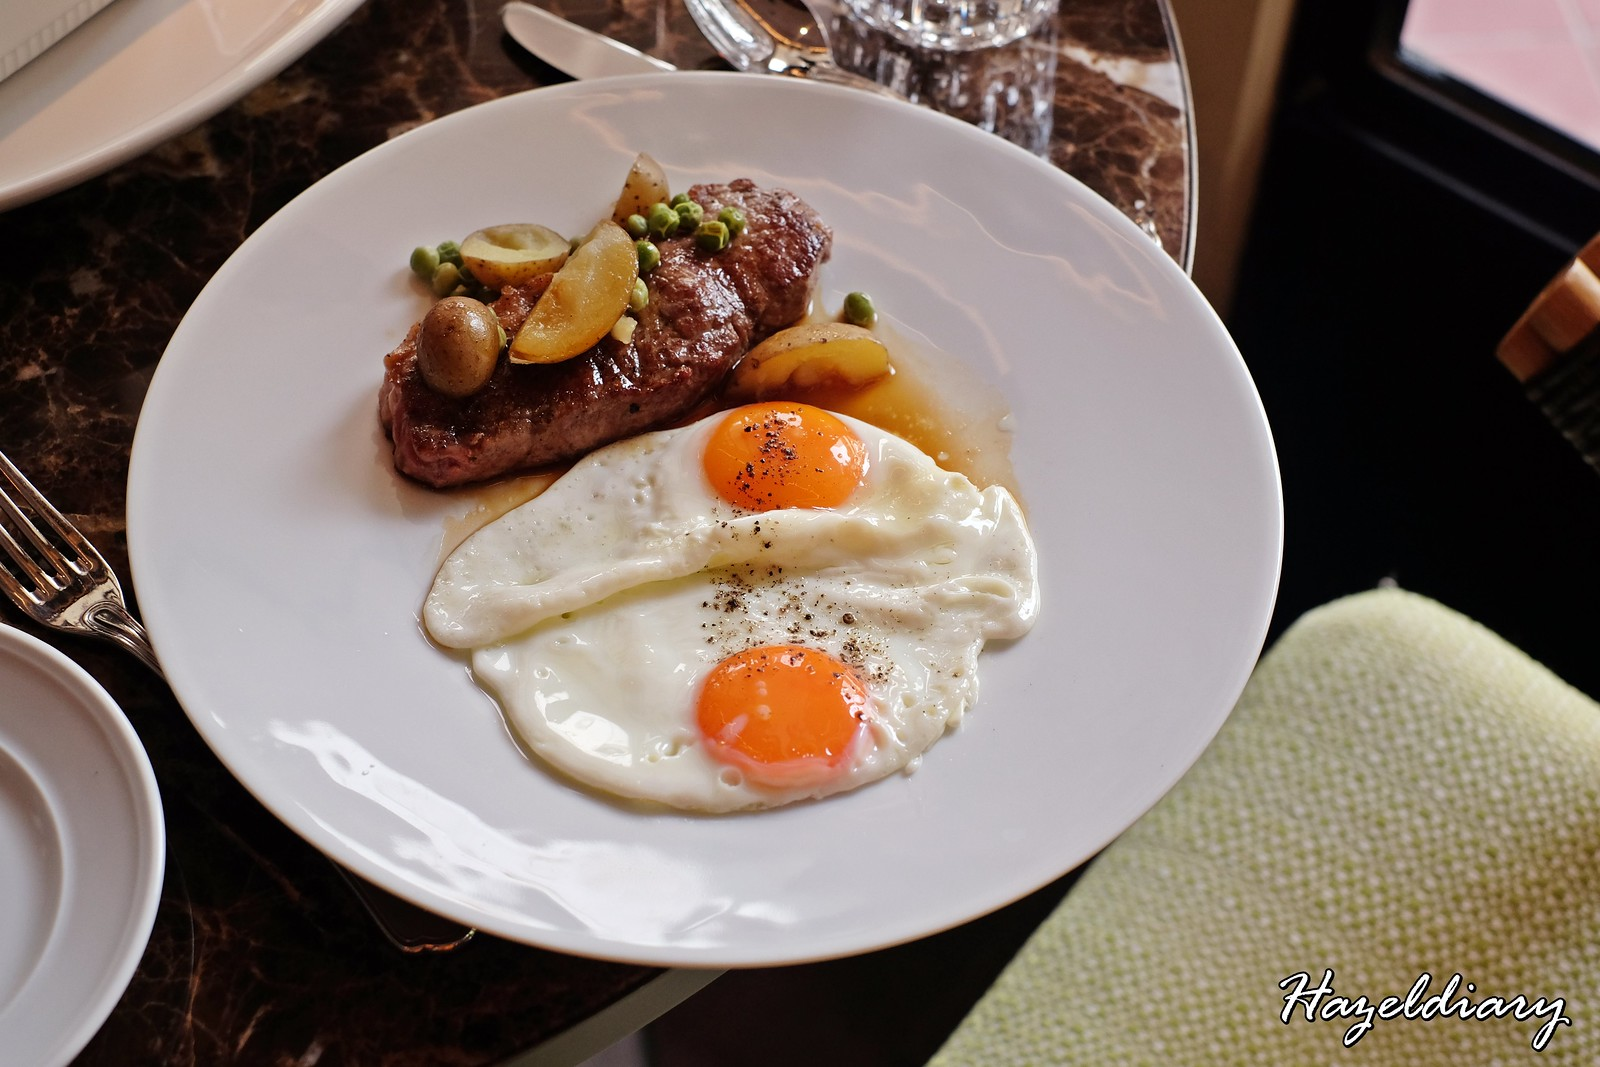 six Senses Brasserie -The Weekender's Brasserie Brunch-Steak and fries